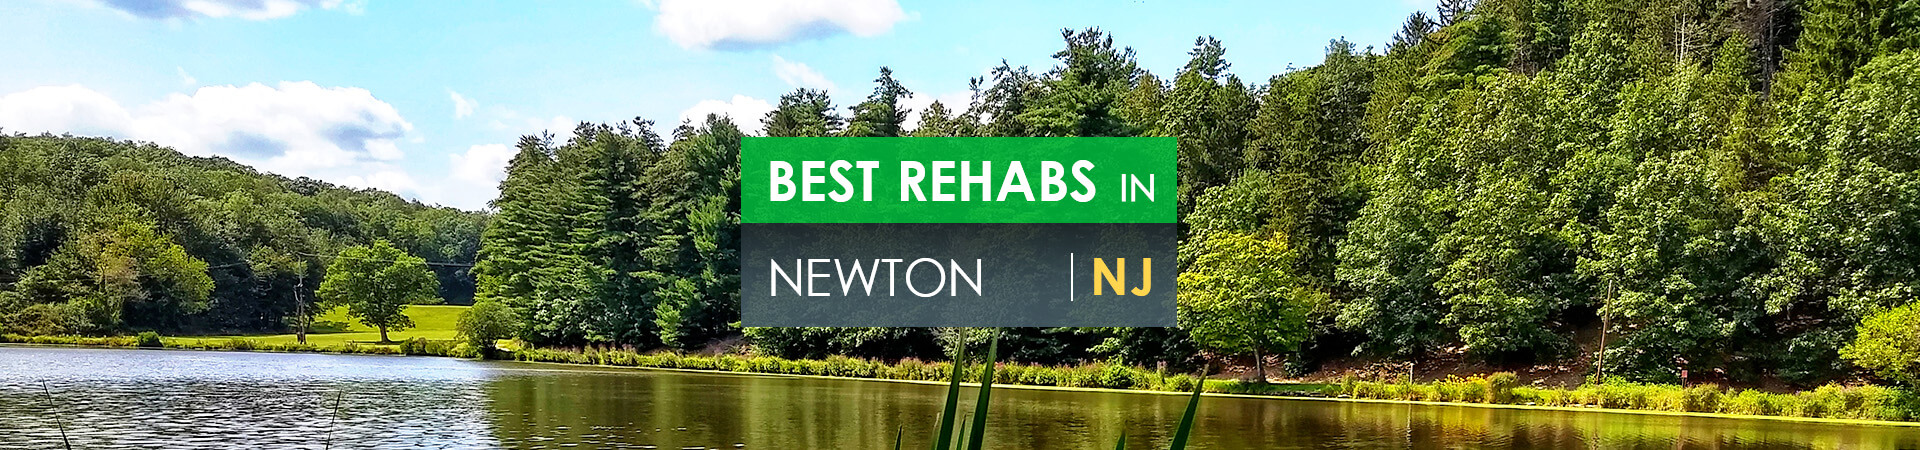 Best rehabs in Newton, NJ